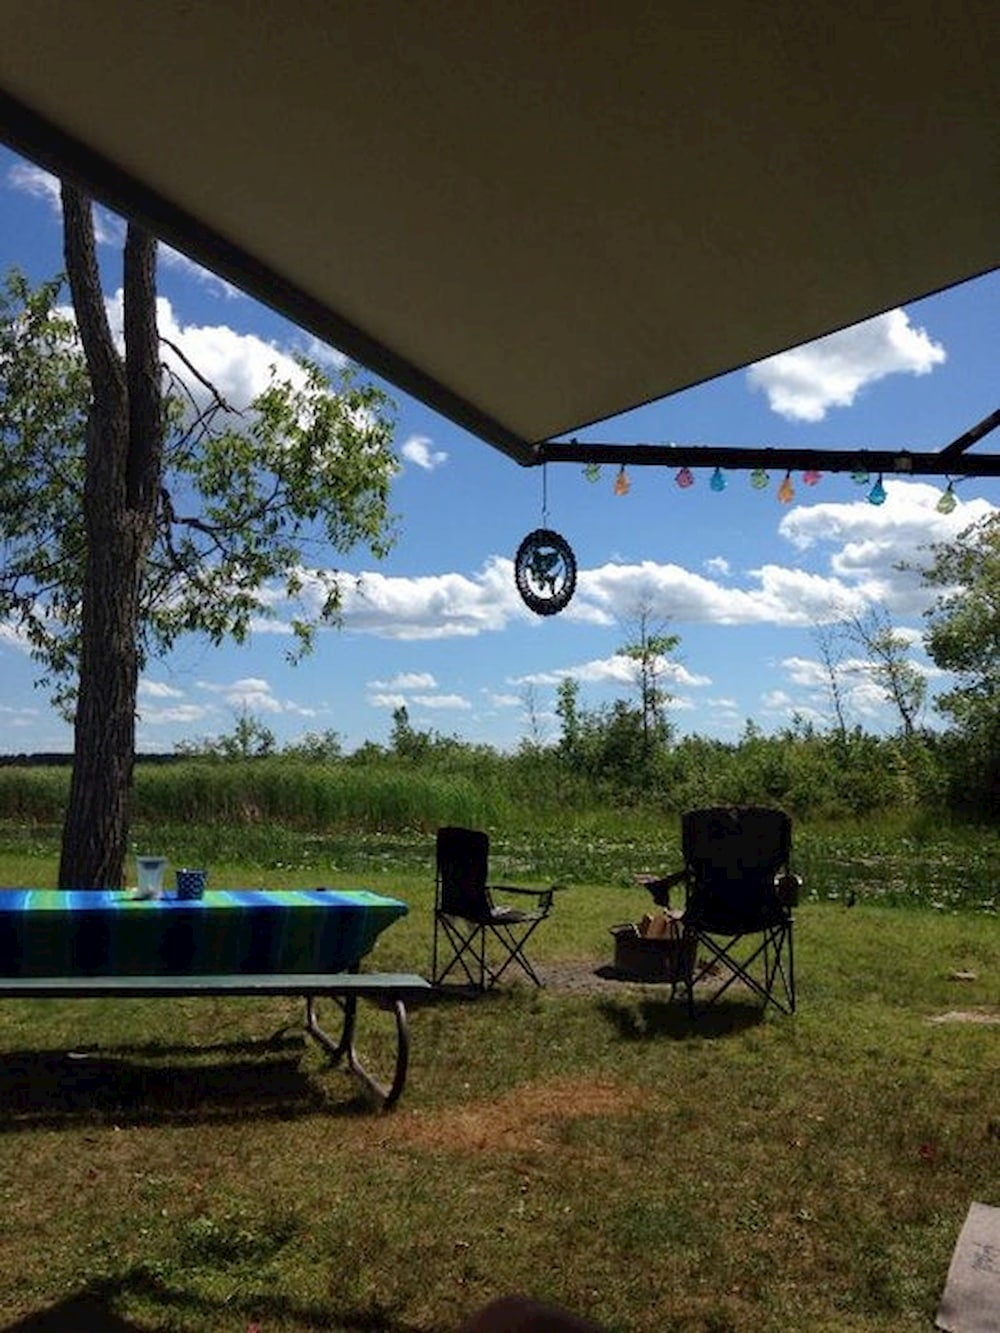 Picnic table and RV awning at a field campground.